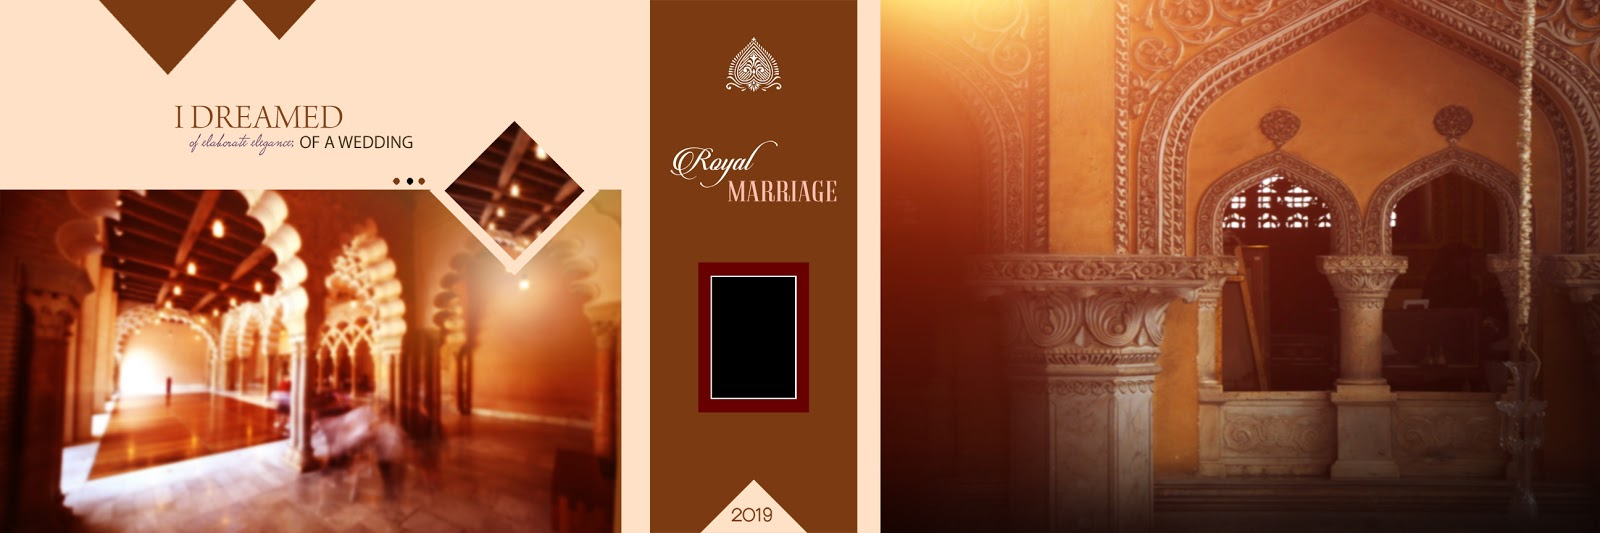 Wedding Album Cover Design Psd Sheets